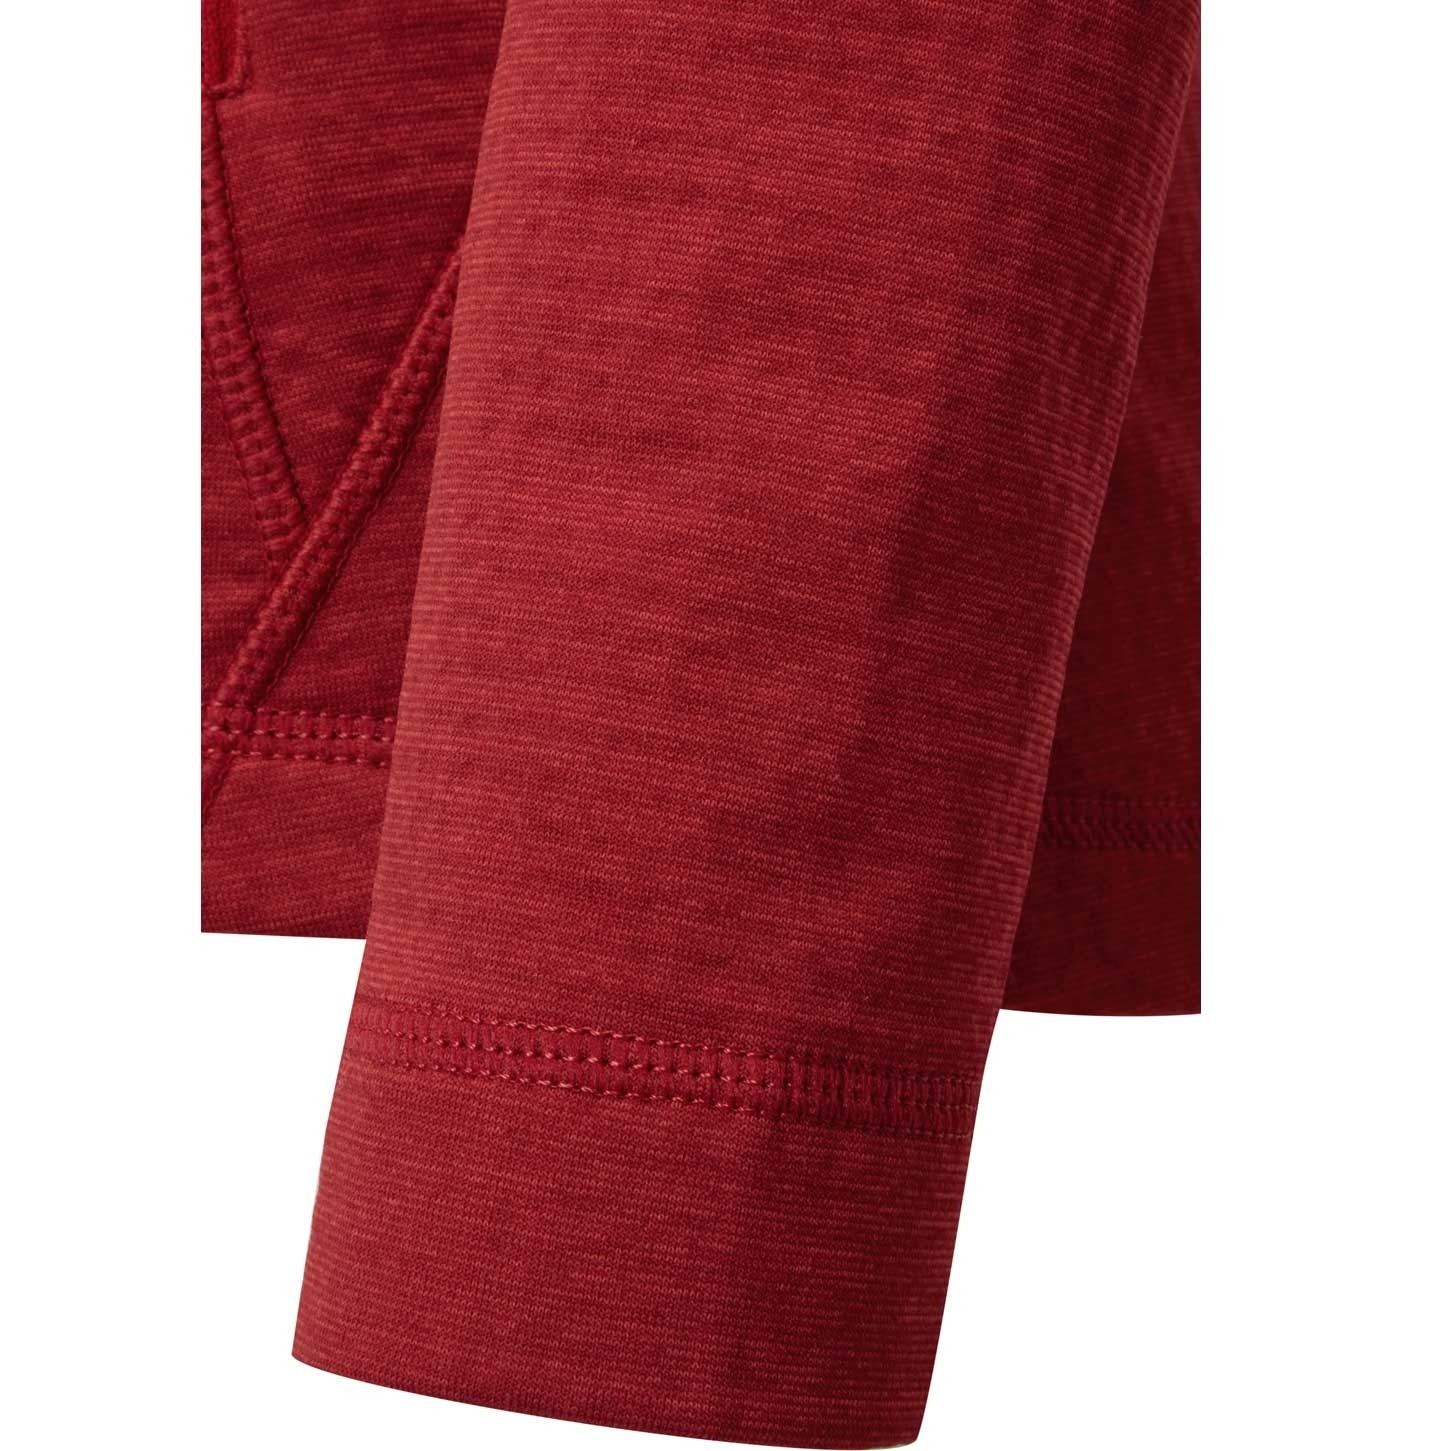 Rab Nucleus Hoody - Women's - Crimson